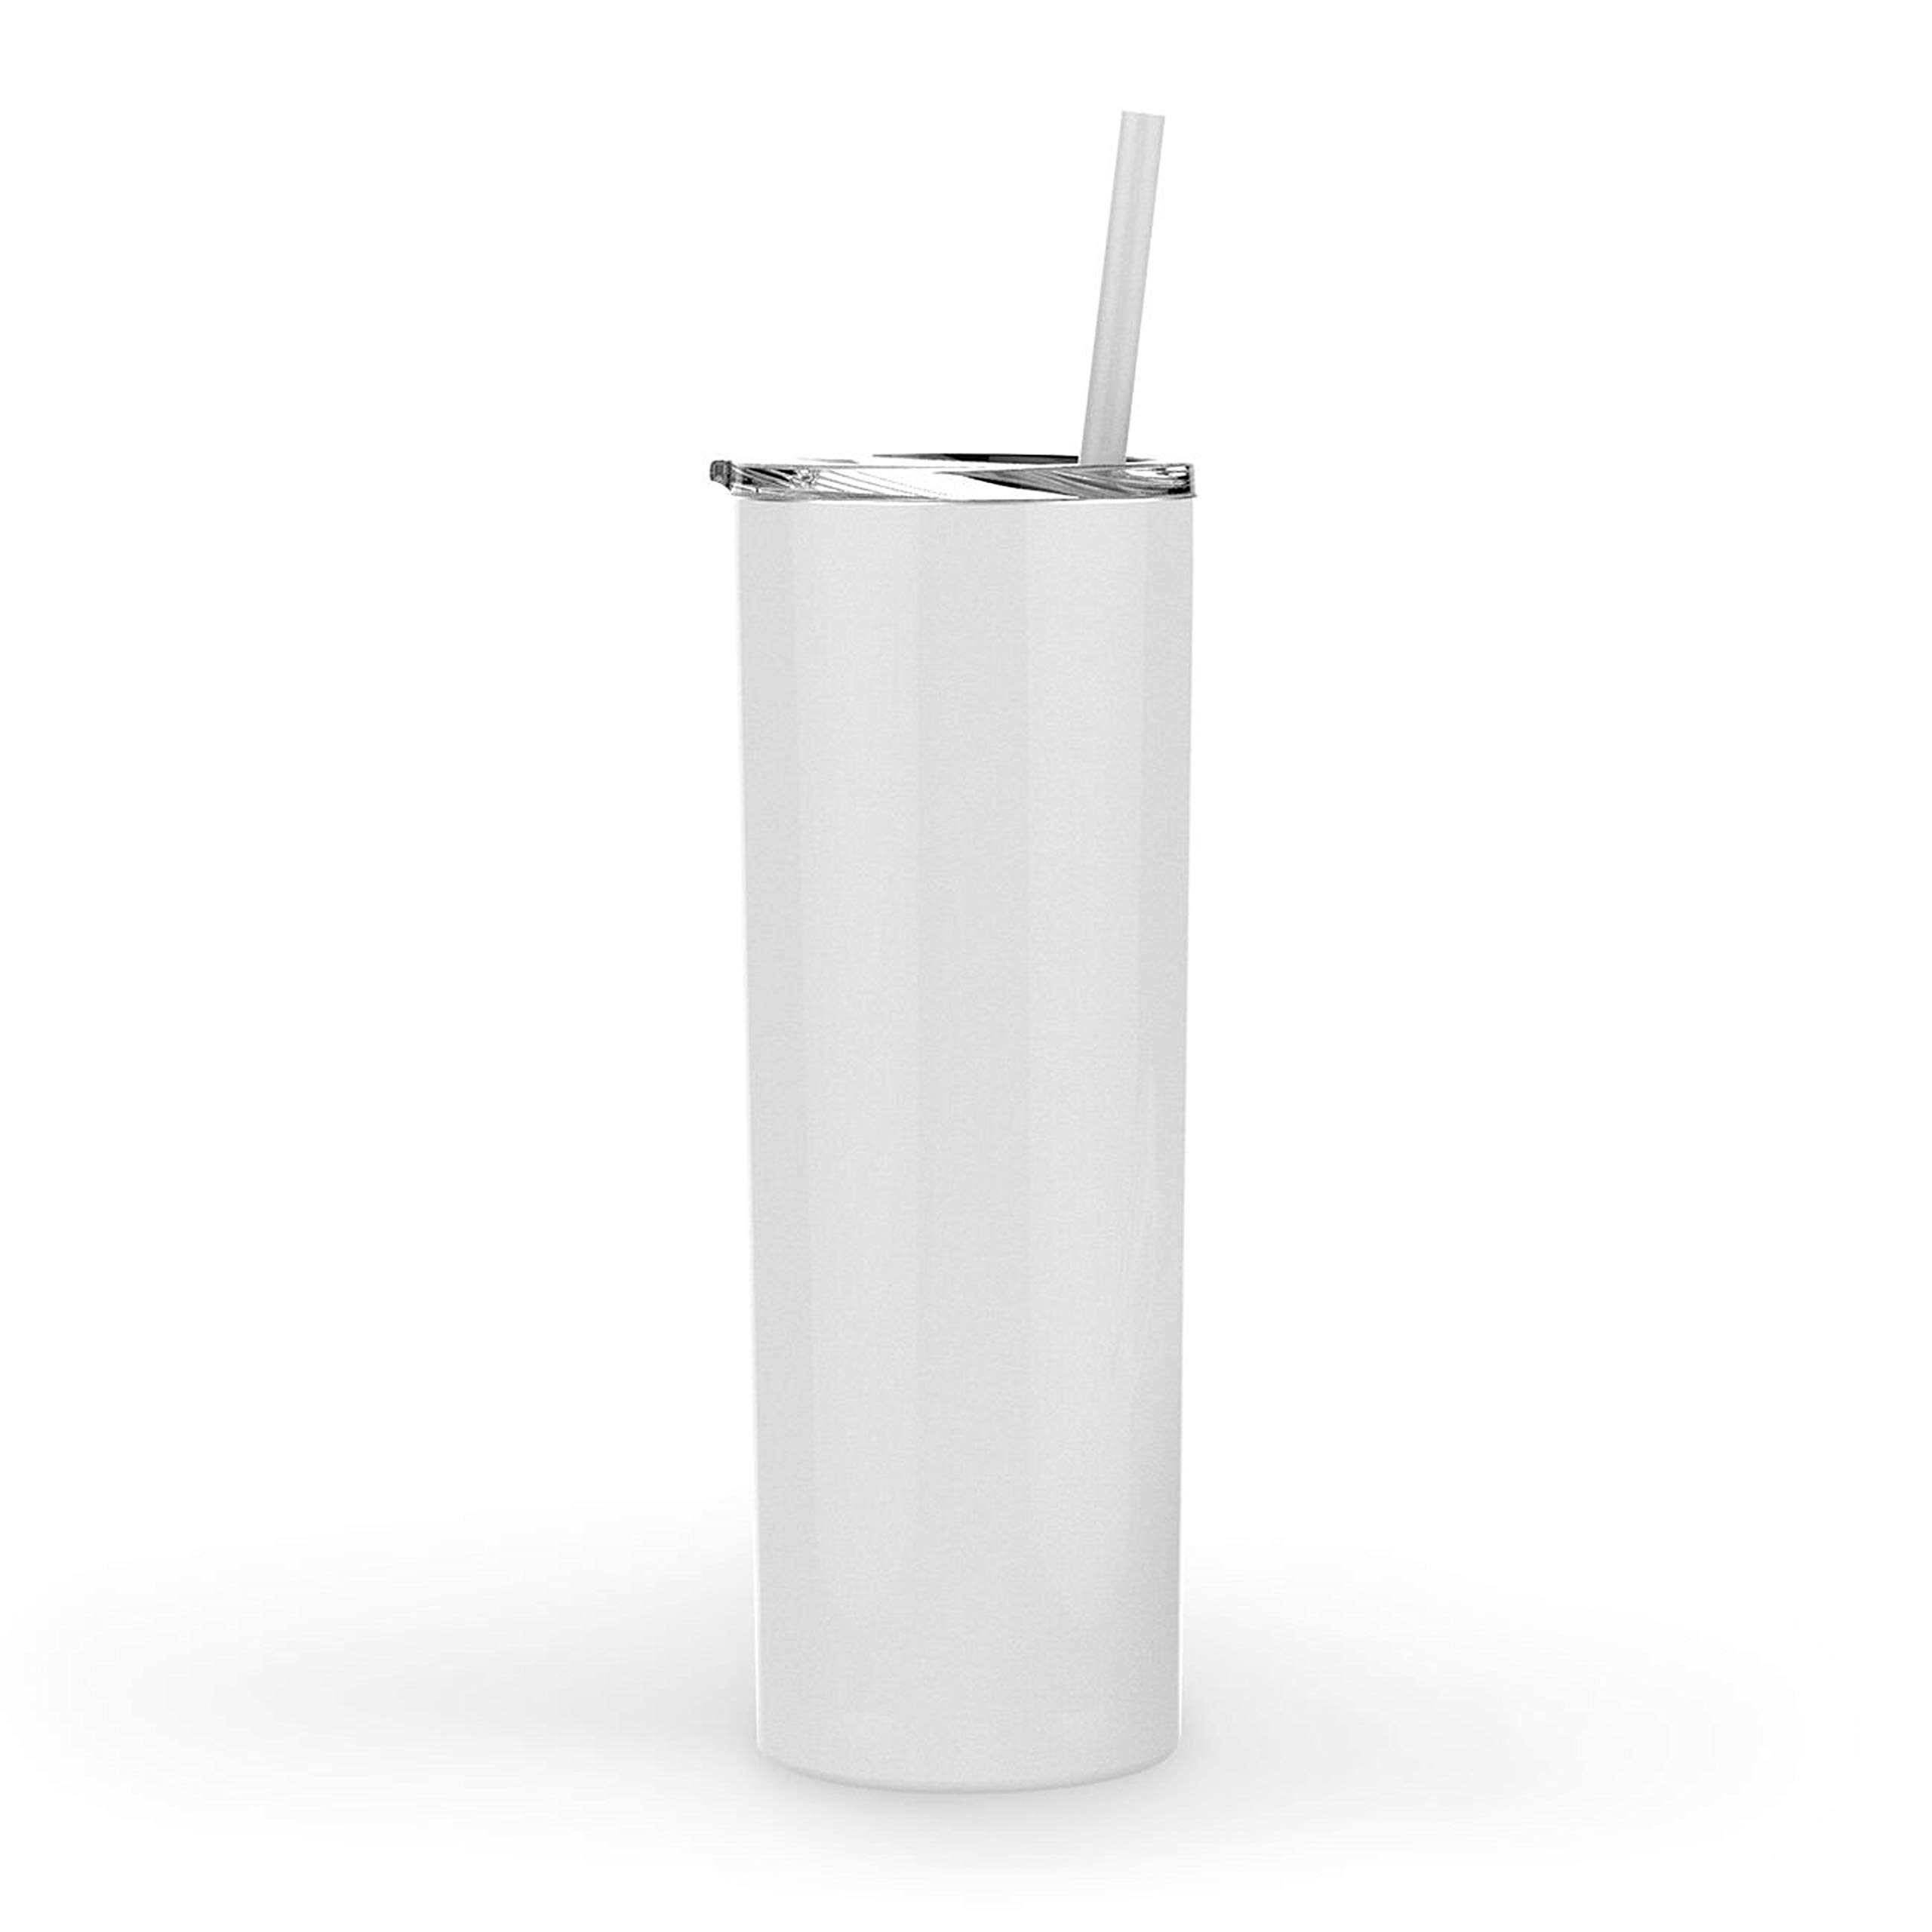 Stellar 20 oz. Skinny Steel 12 Pack Double Wall Stainless Tumbler (White) by Stellar (Image #2)